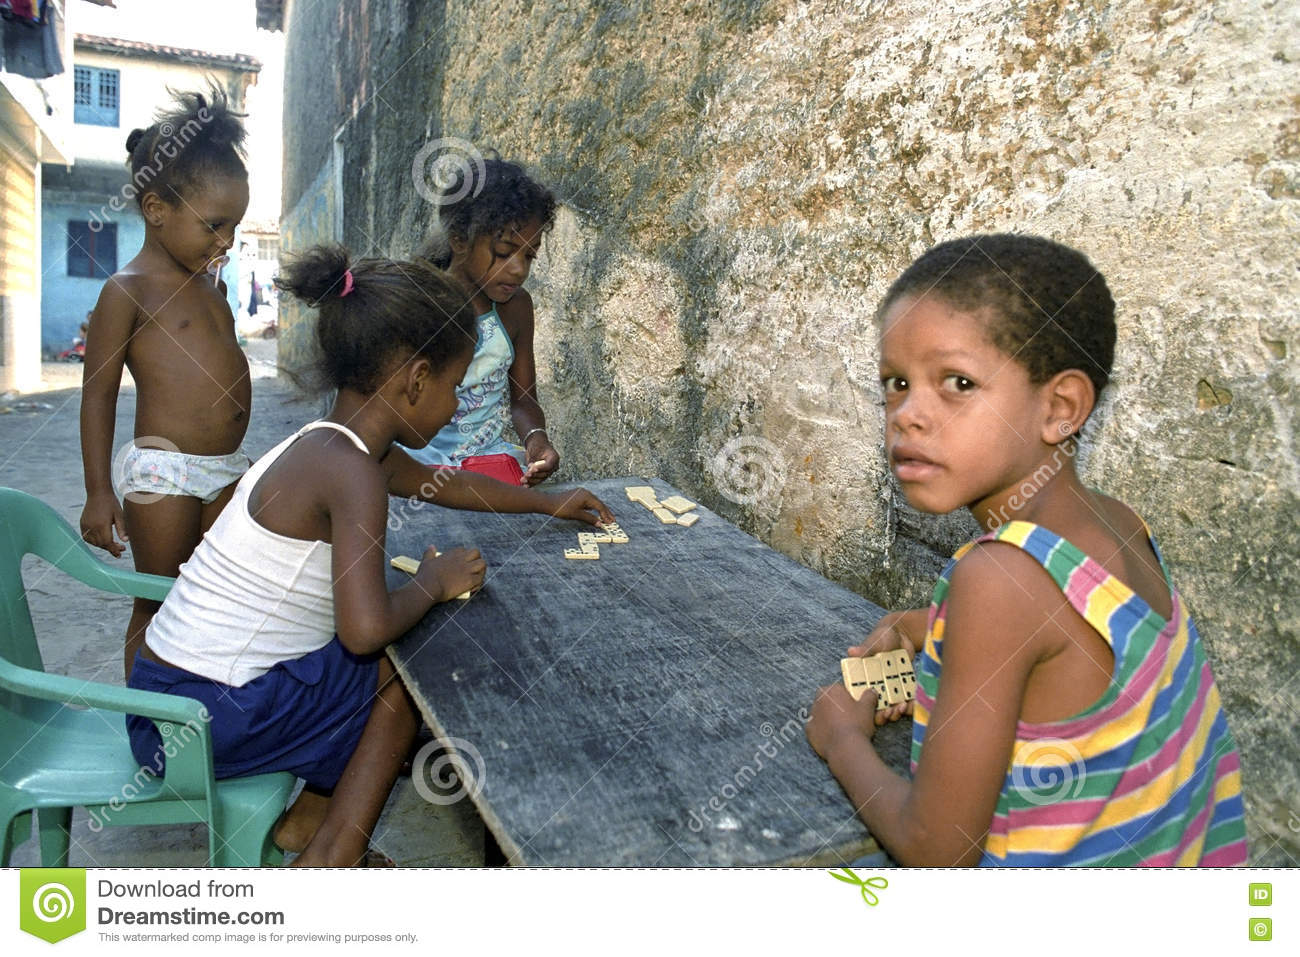 Latino children play Domino in slum, Recife, Brazil